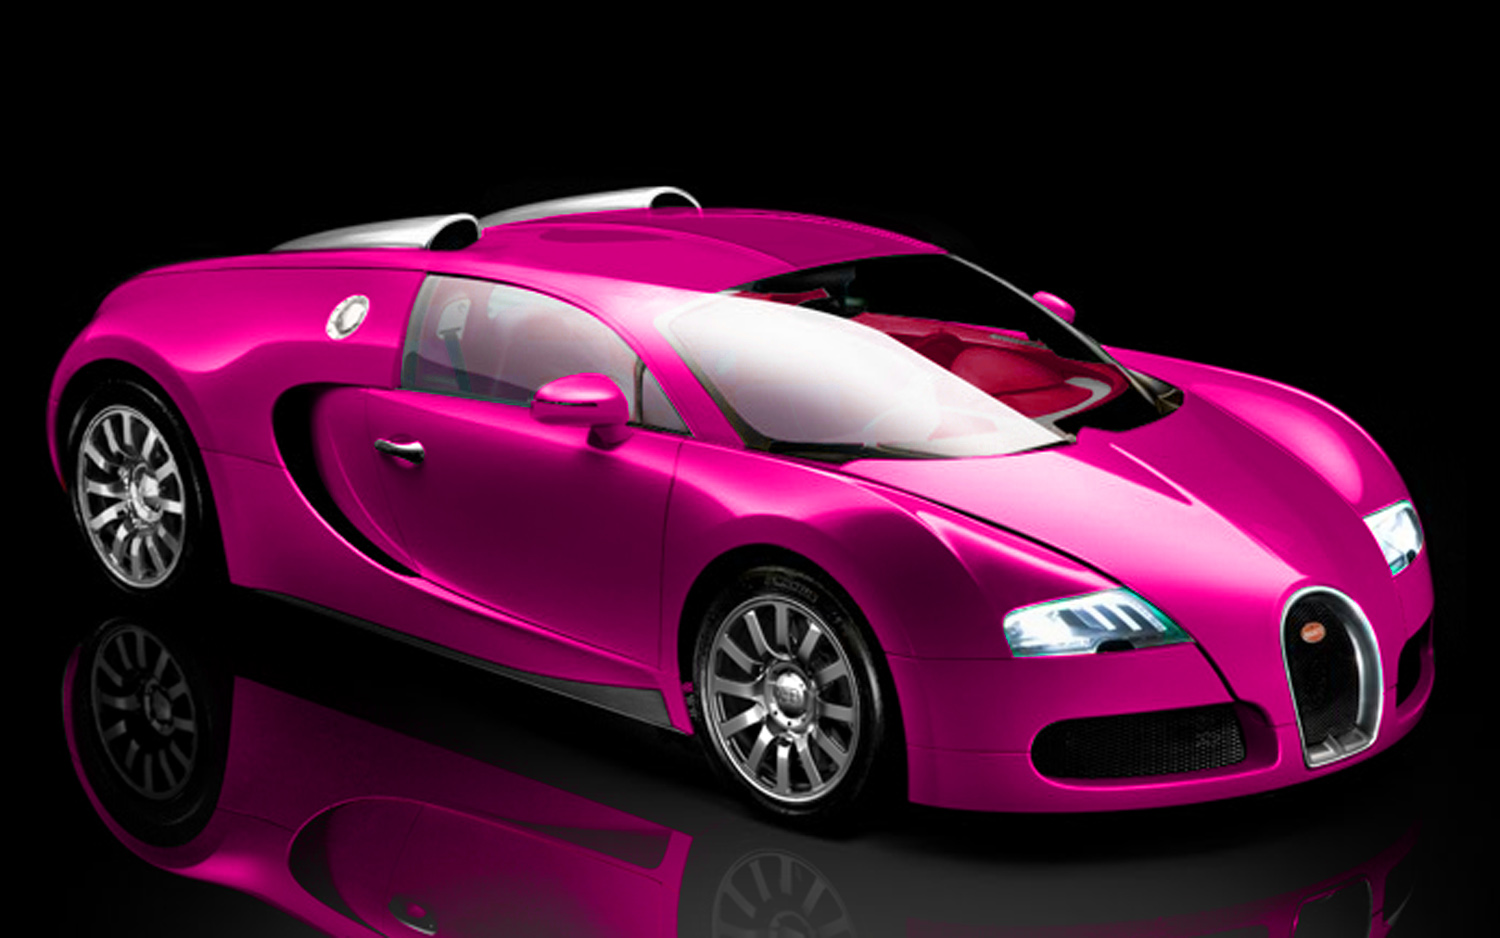 Bugatti Veyron Cost 17 Free Hd Car Wallpaper Carwallpapersfordesktop Org